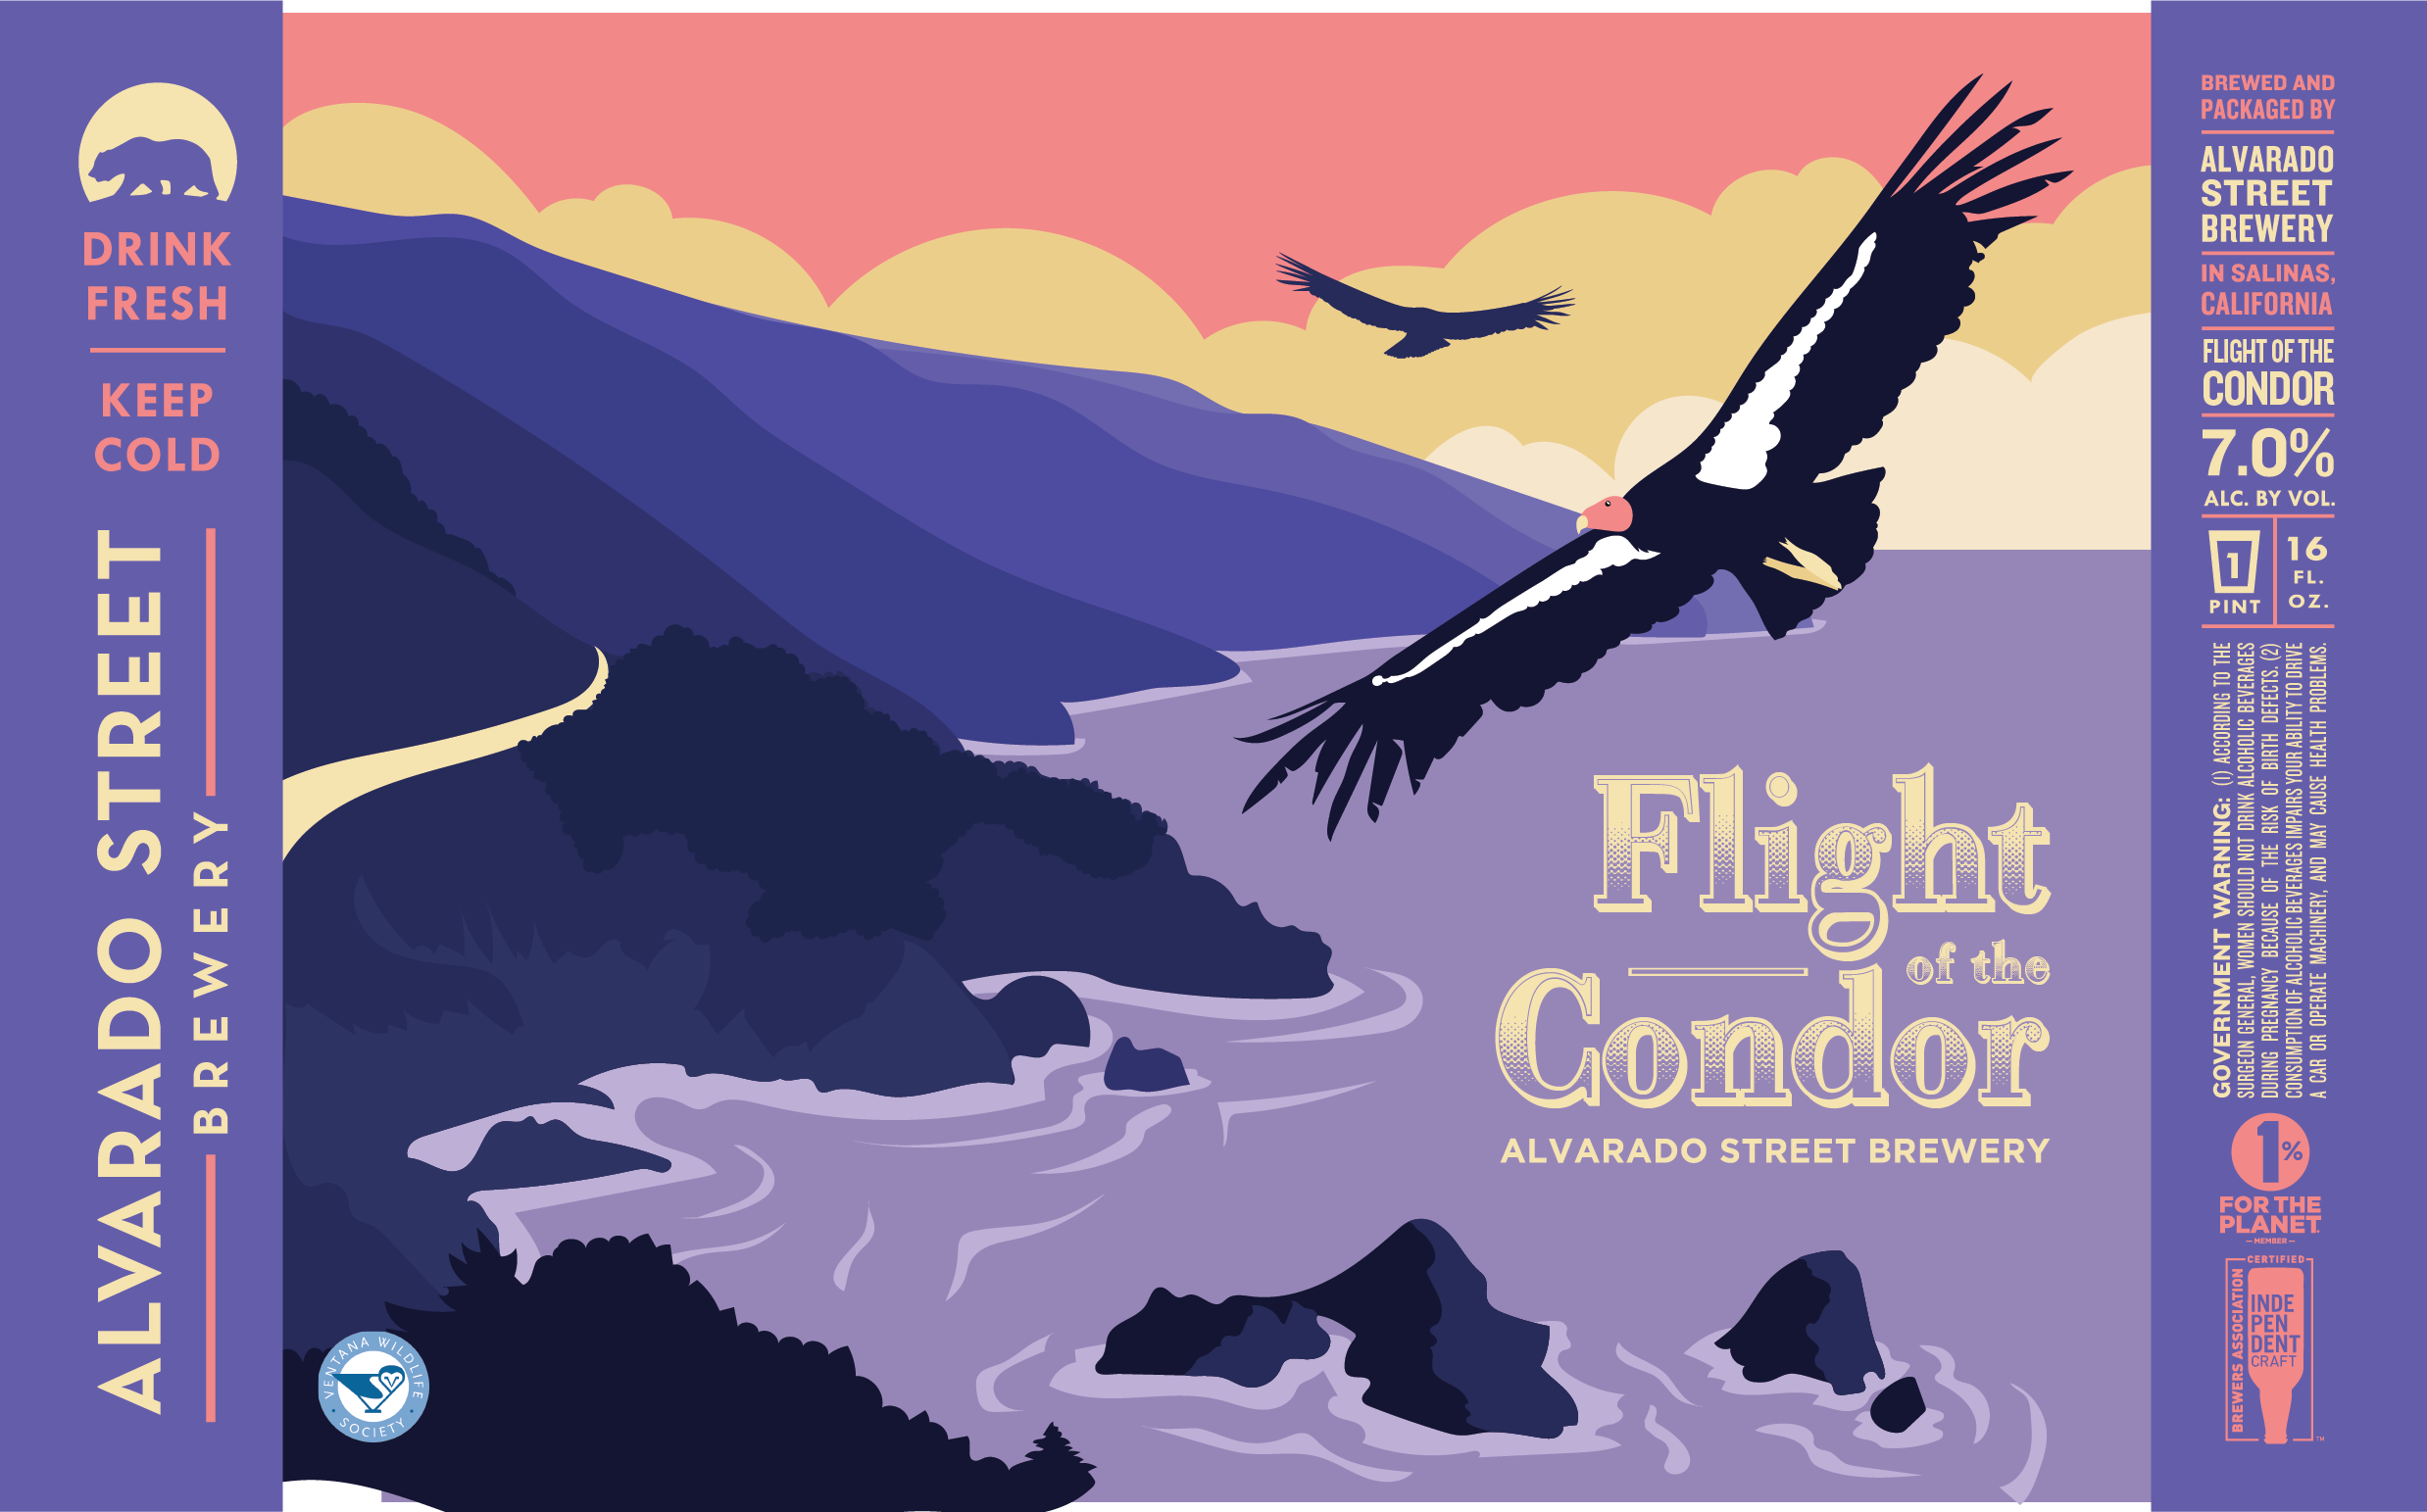 16oz Can-Flight-of-the-Condor-01.png